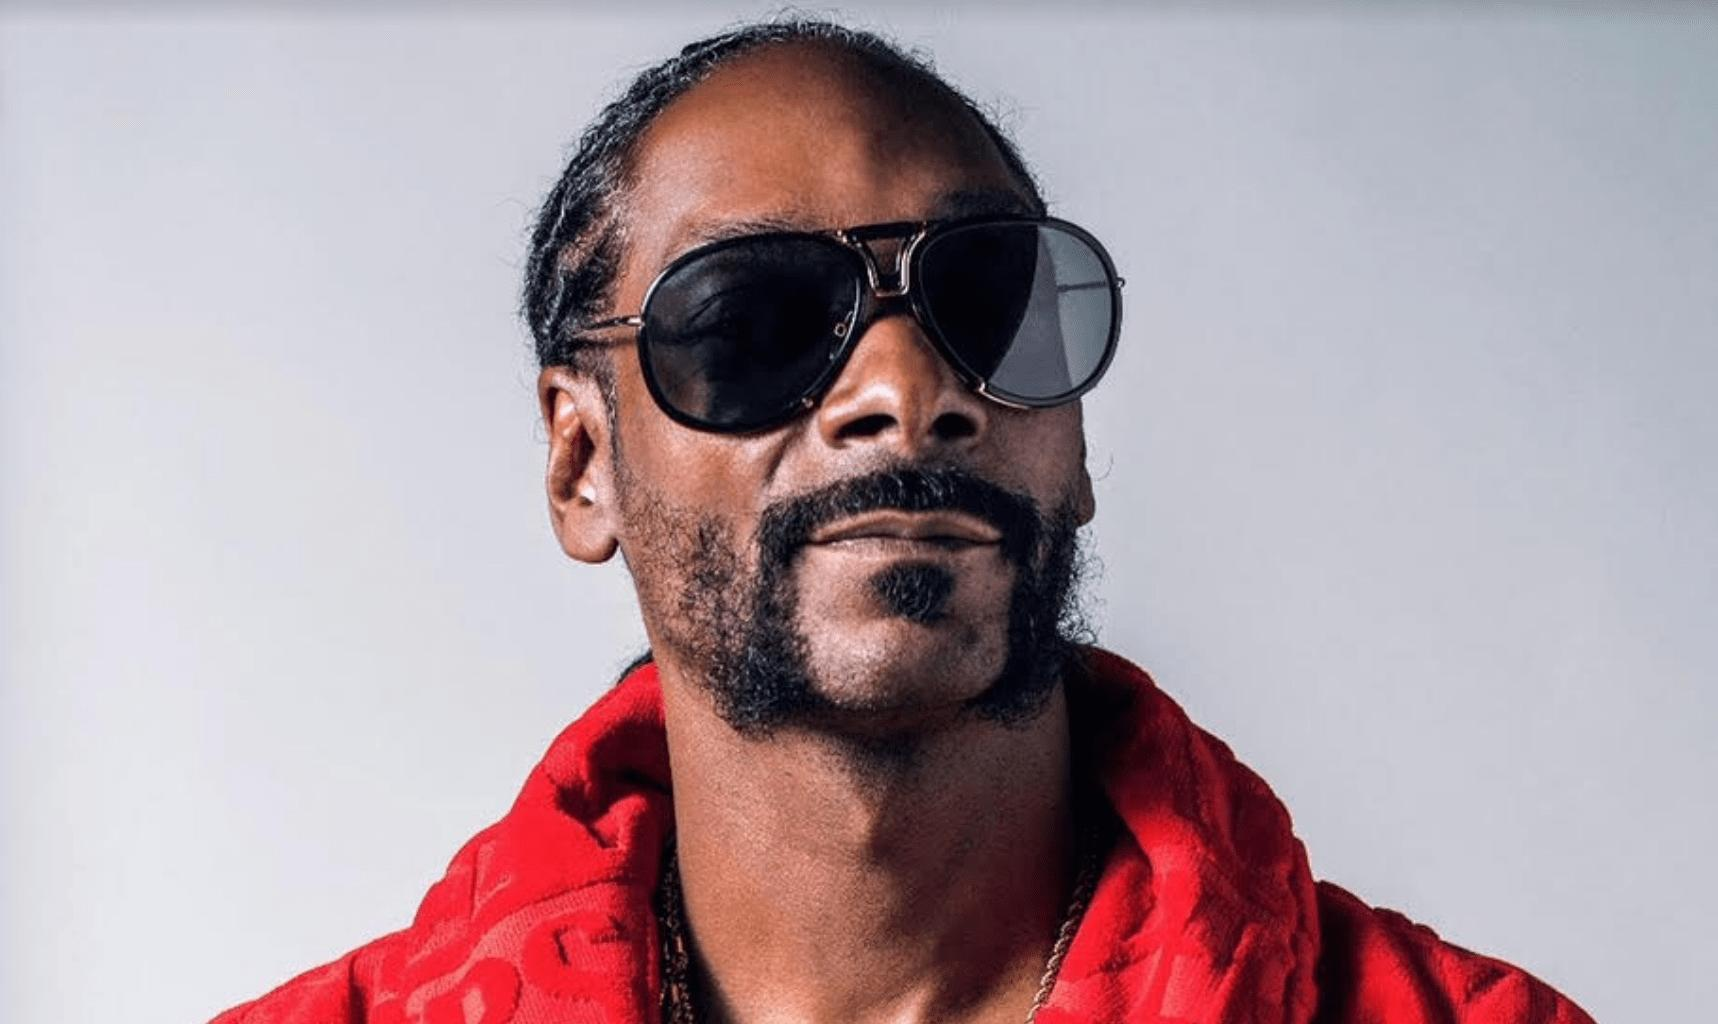 Snoop Dogg' Upcoming Lullaby Album For Kids Has Fans Excited